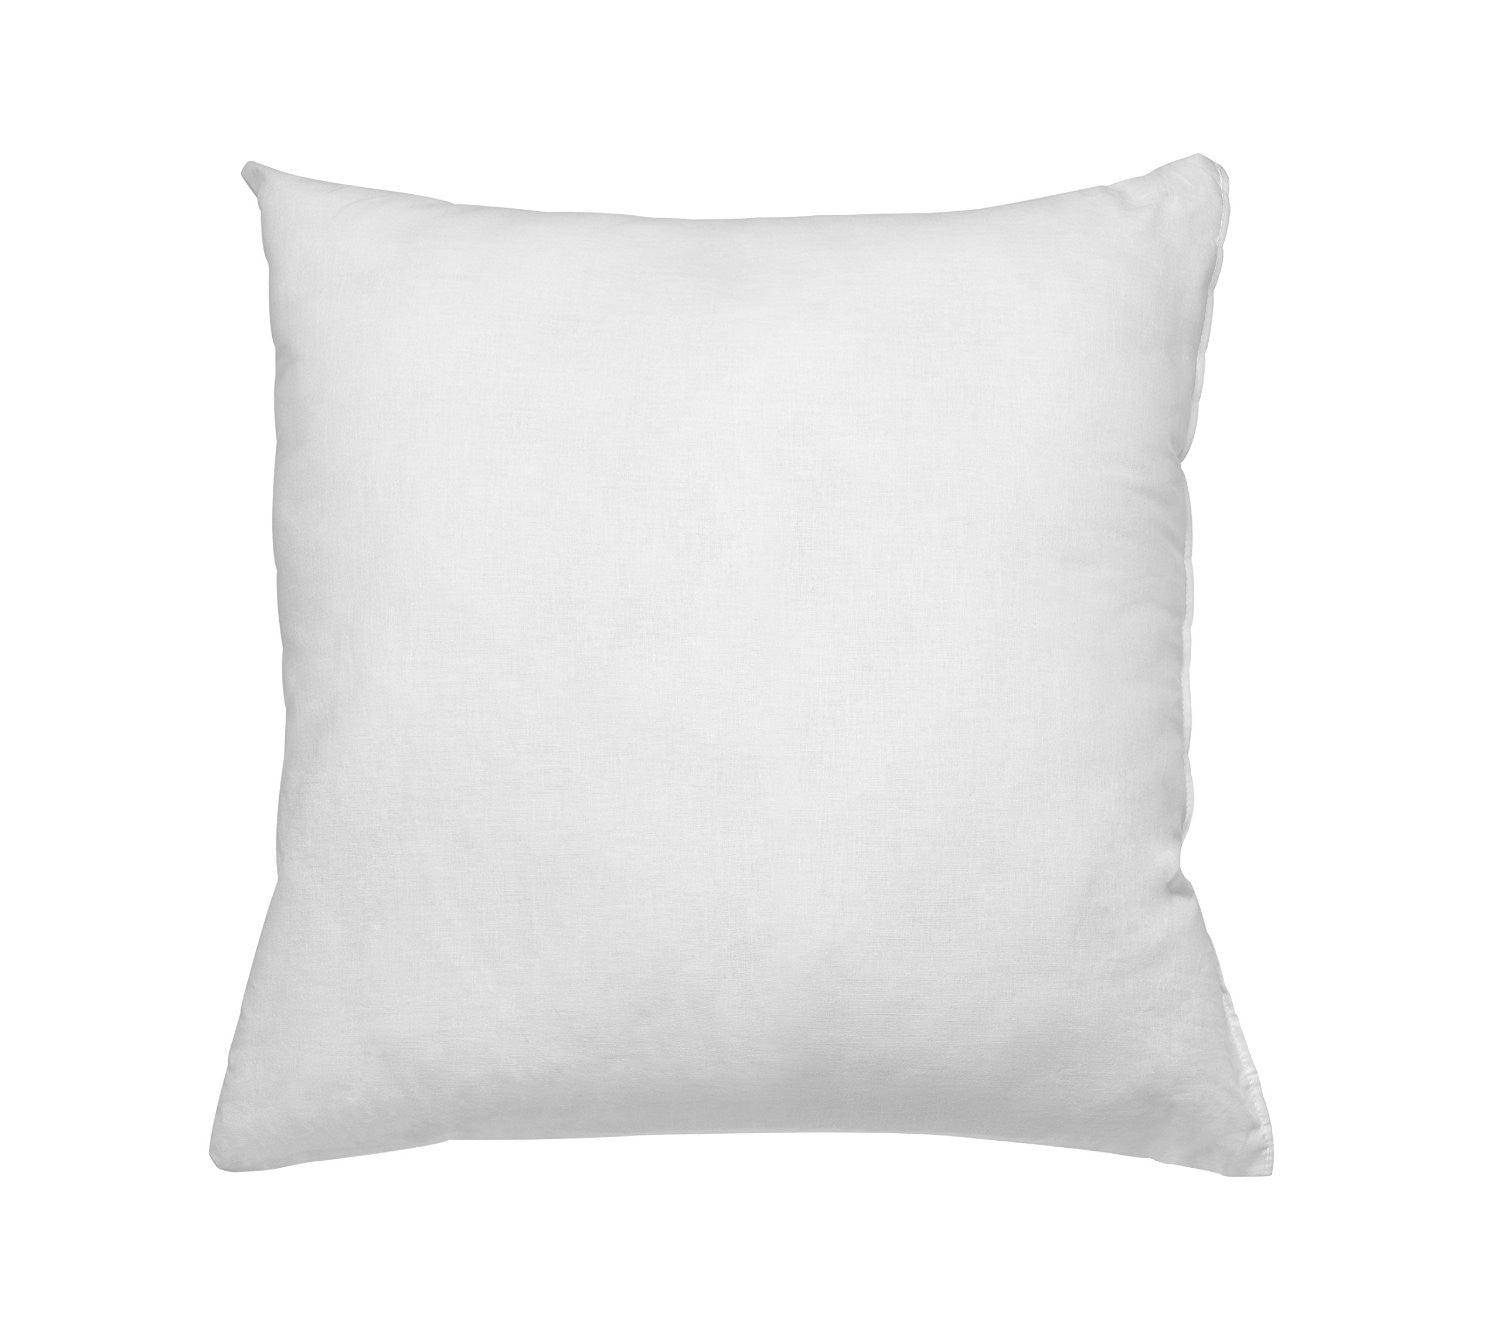 Decorative Square Pillow Insert (2 Pack)